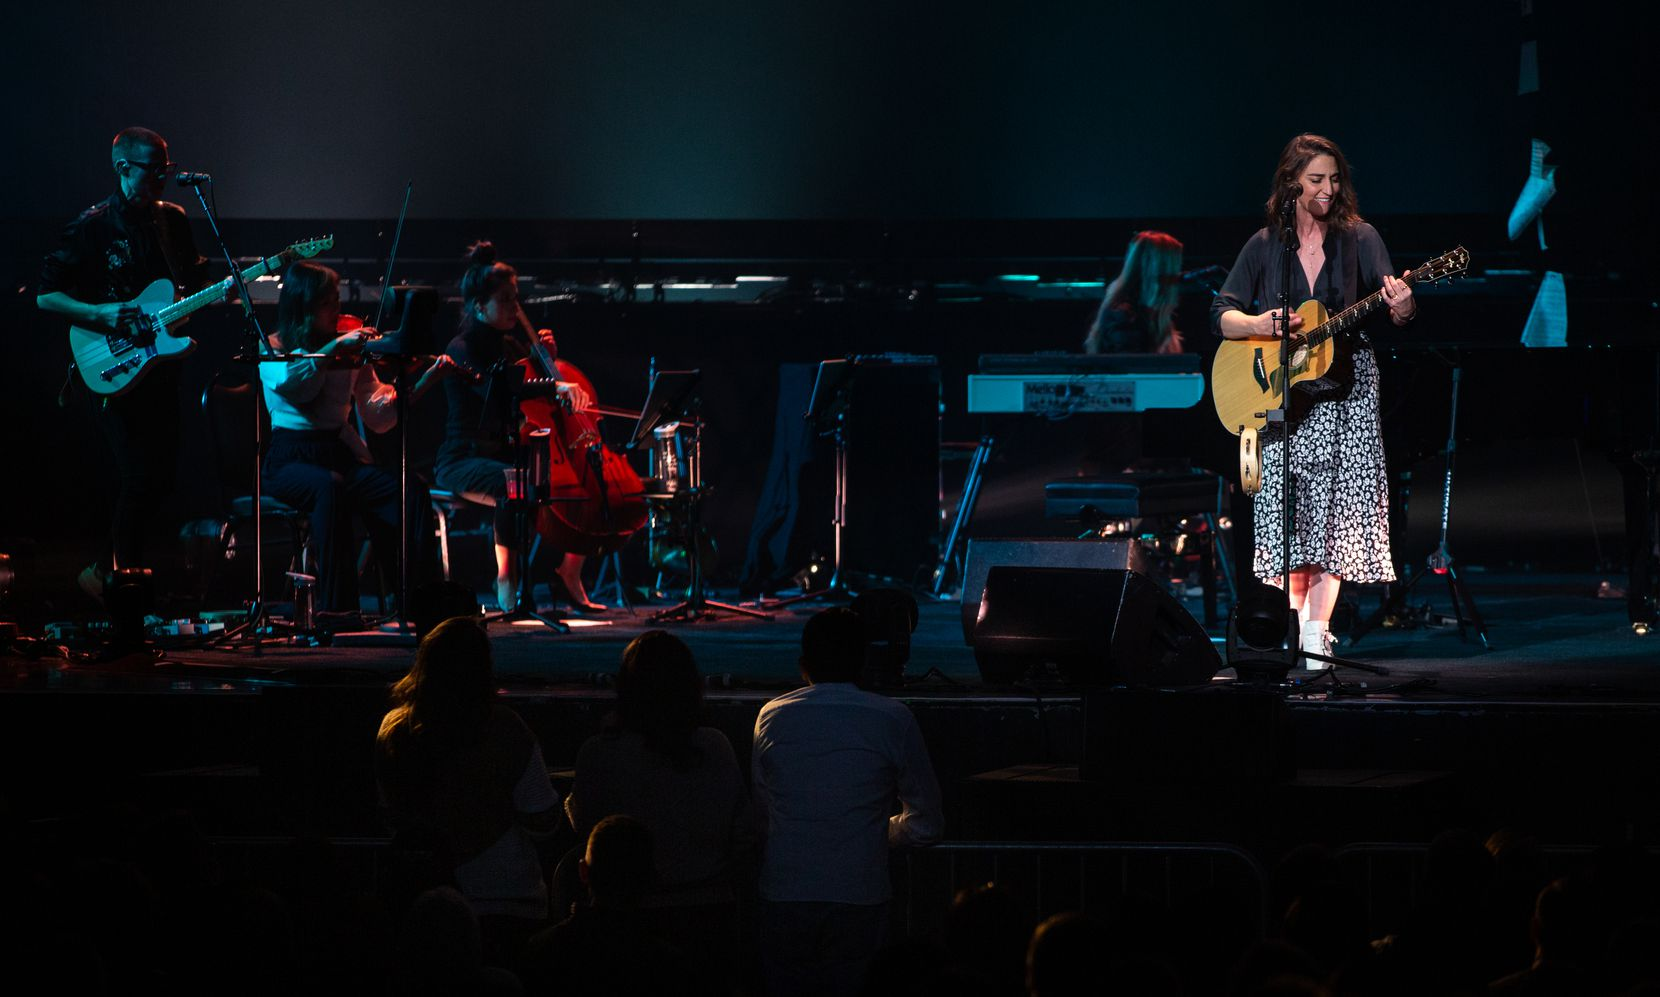 Sara Bareilles performs on Nov. 12, 2019 at the Toyota Music Factory in Irving, Texas.